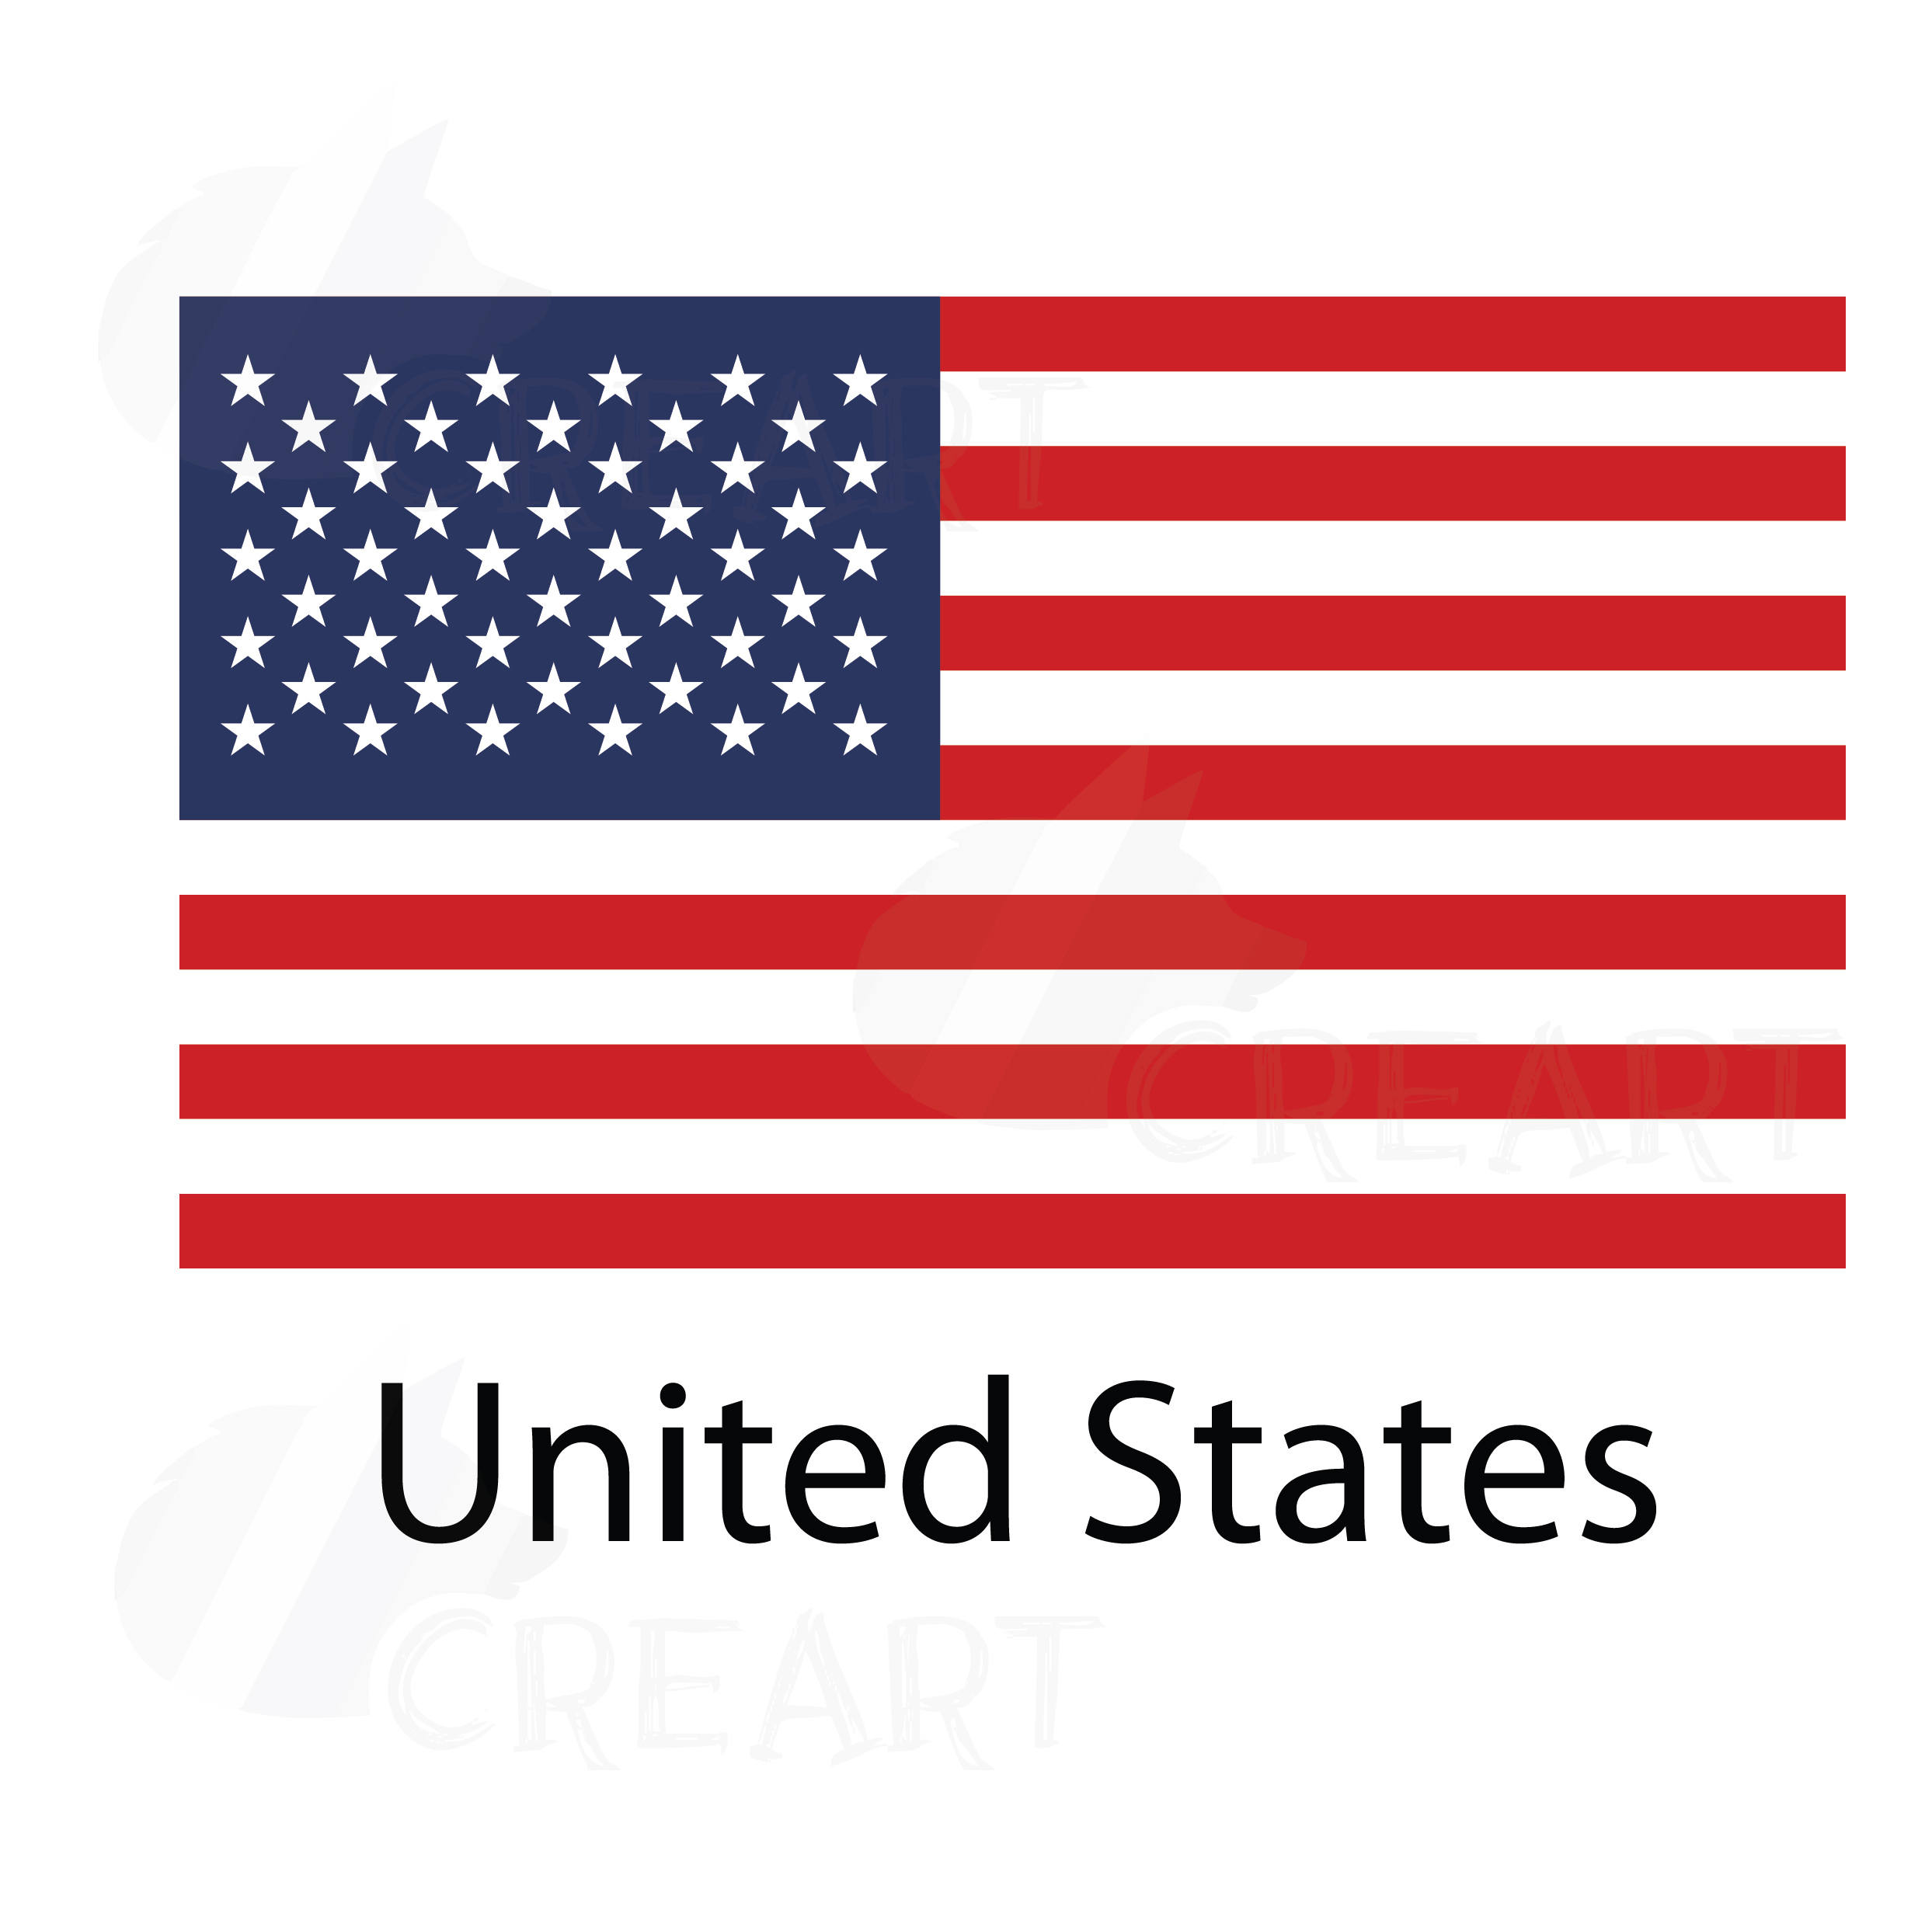 flags of the world clipart at getdrawings com free for personal rh getdrawings com USA Waving Flag Clip Art USA Flags Clip Art Outline